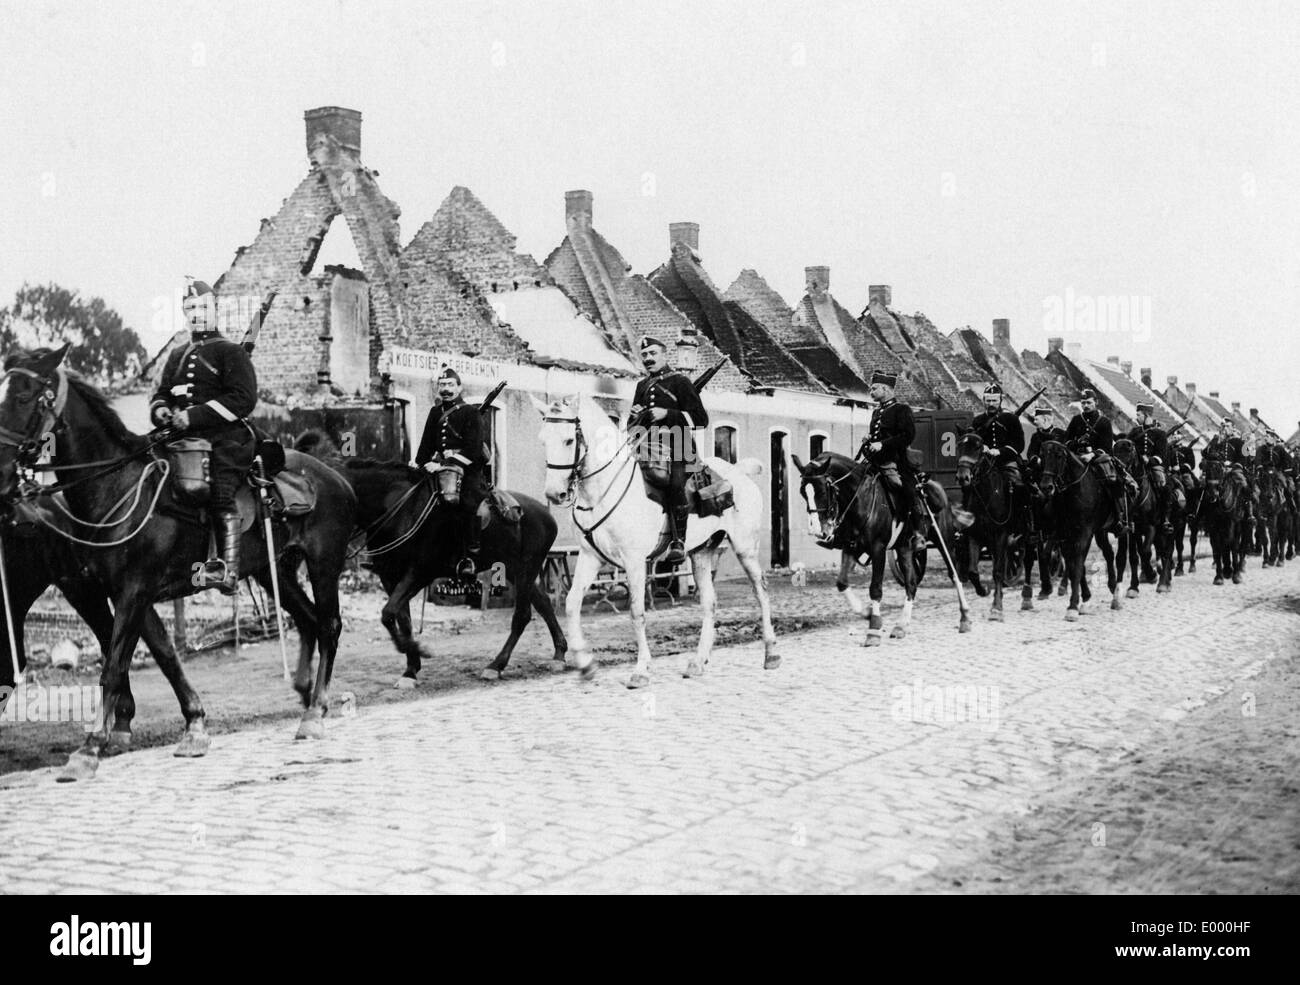 Belgian cavalry at the Western front, 1914 - Stock Image